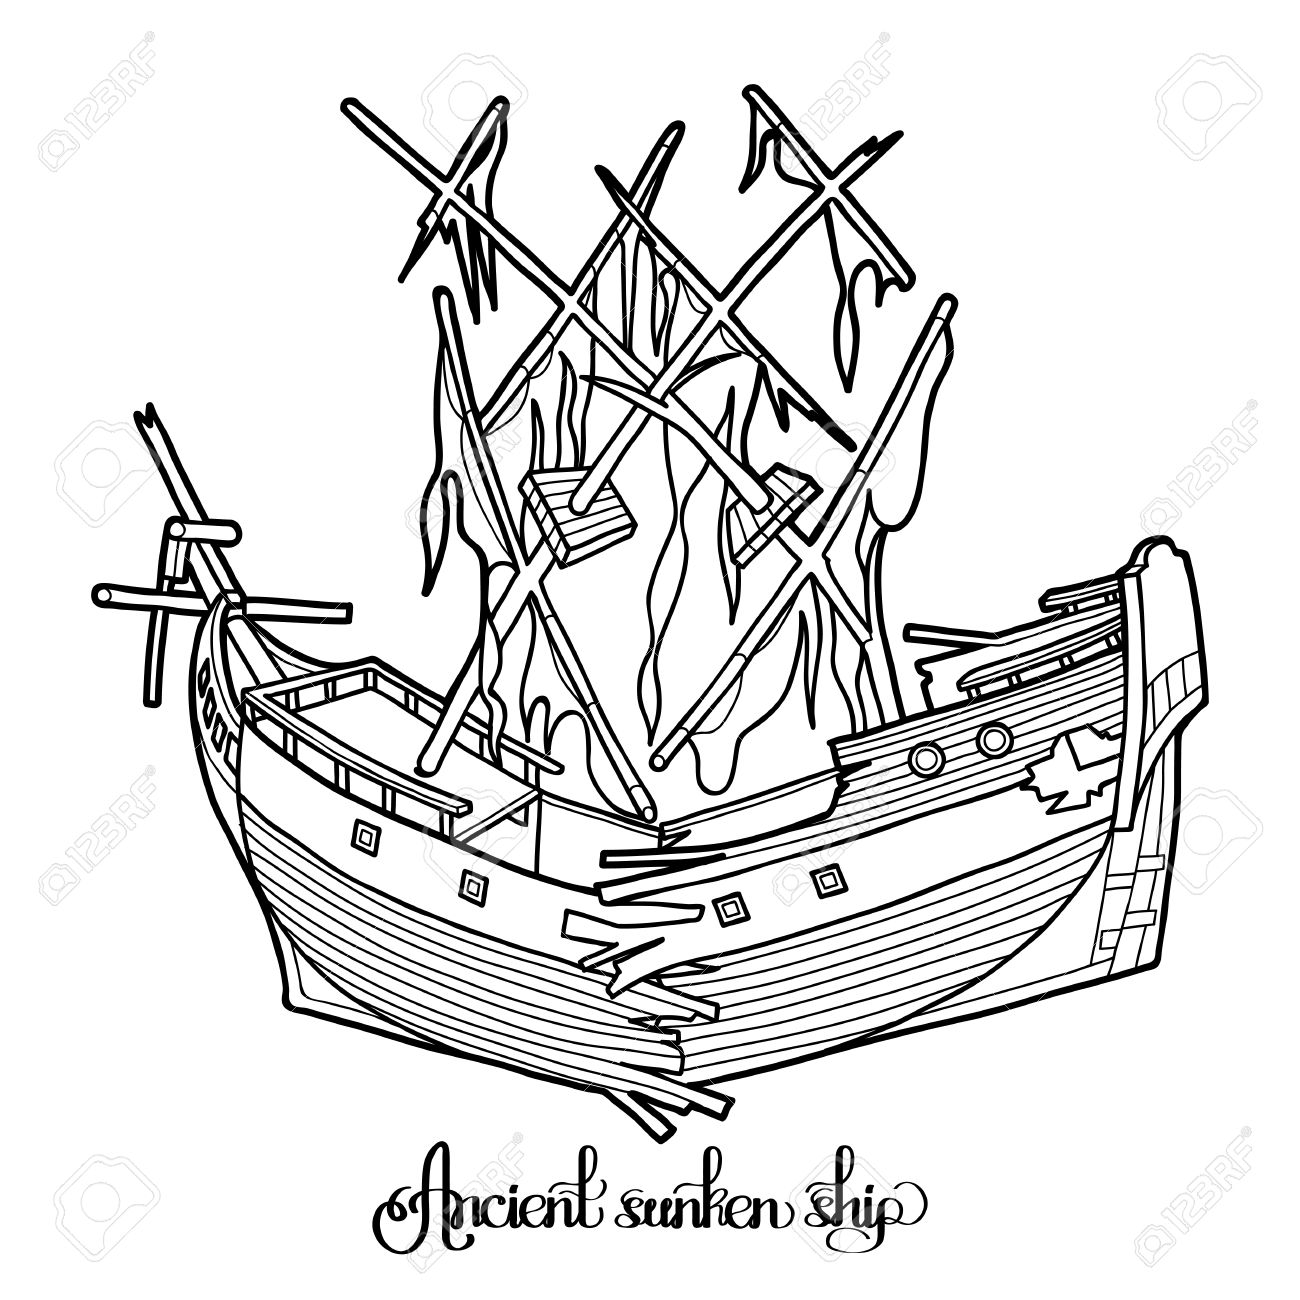 1300x1300 Ancient Sunken Ship. Graphic Vector Illustration Isolated